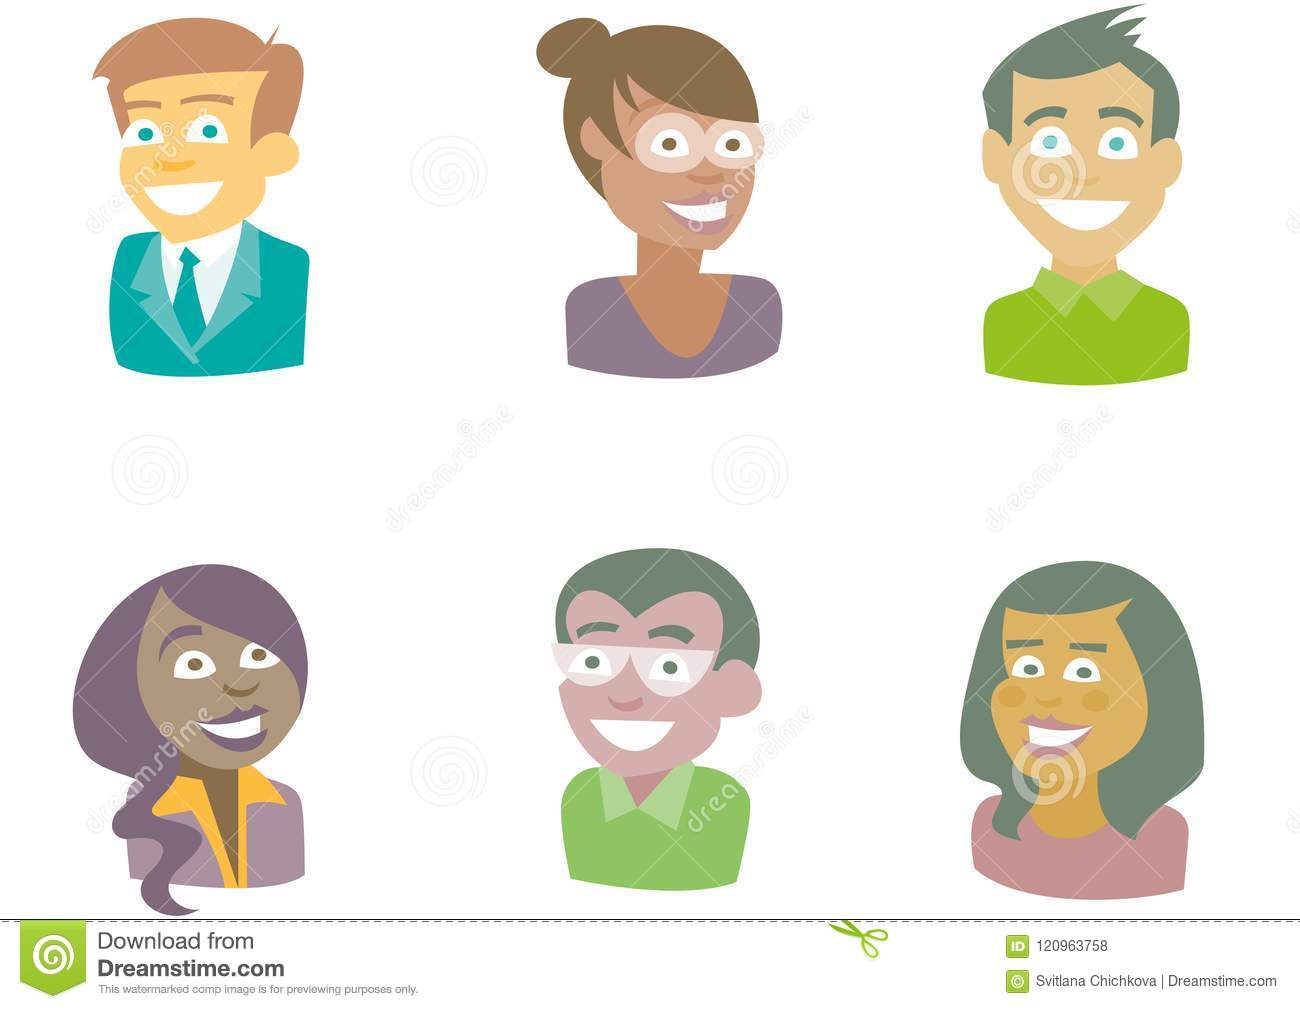 People of different races. Smiling. Bust.